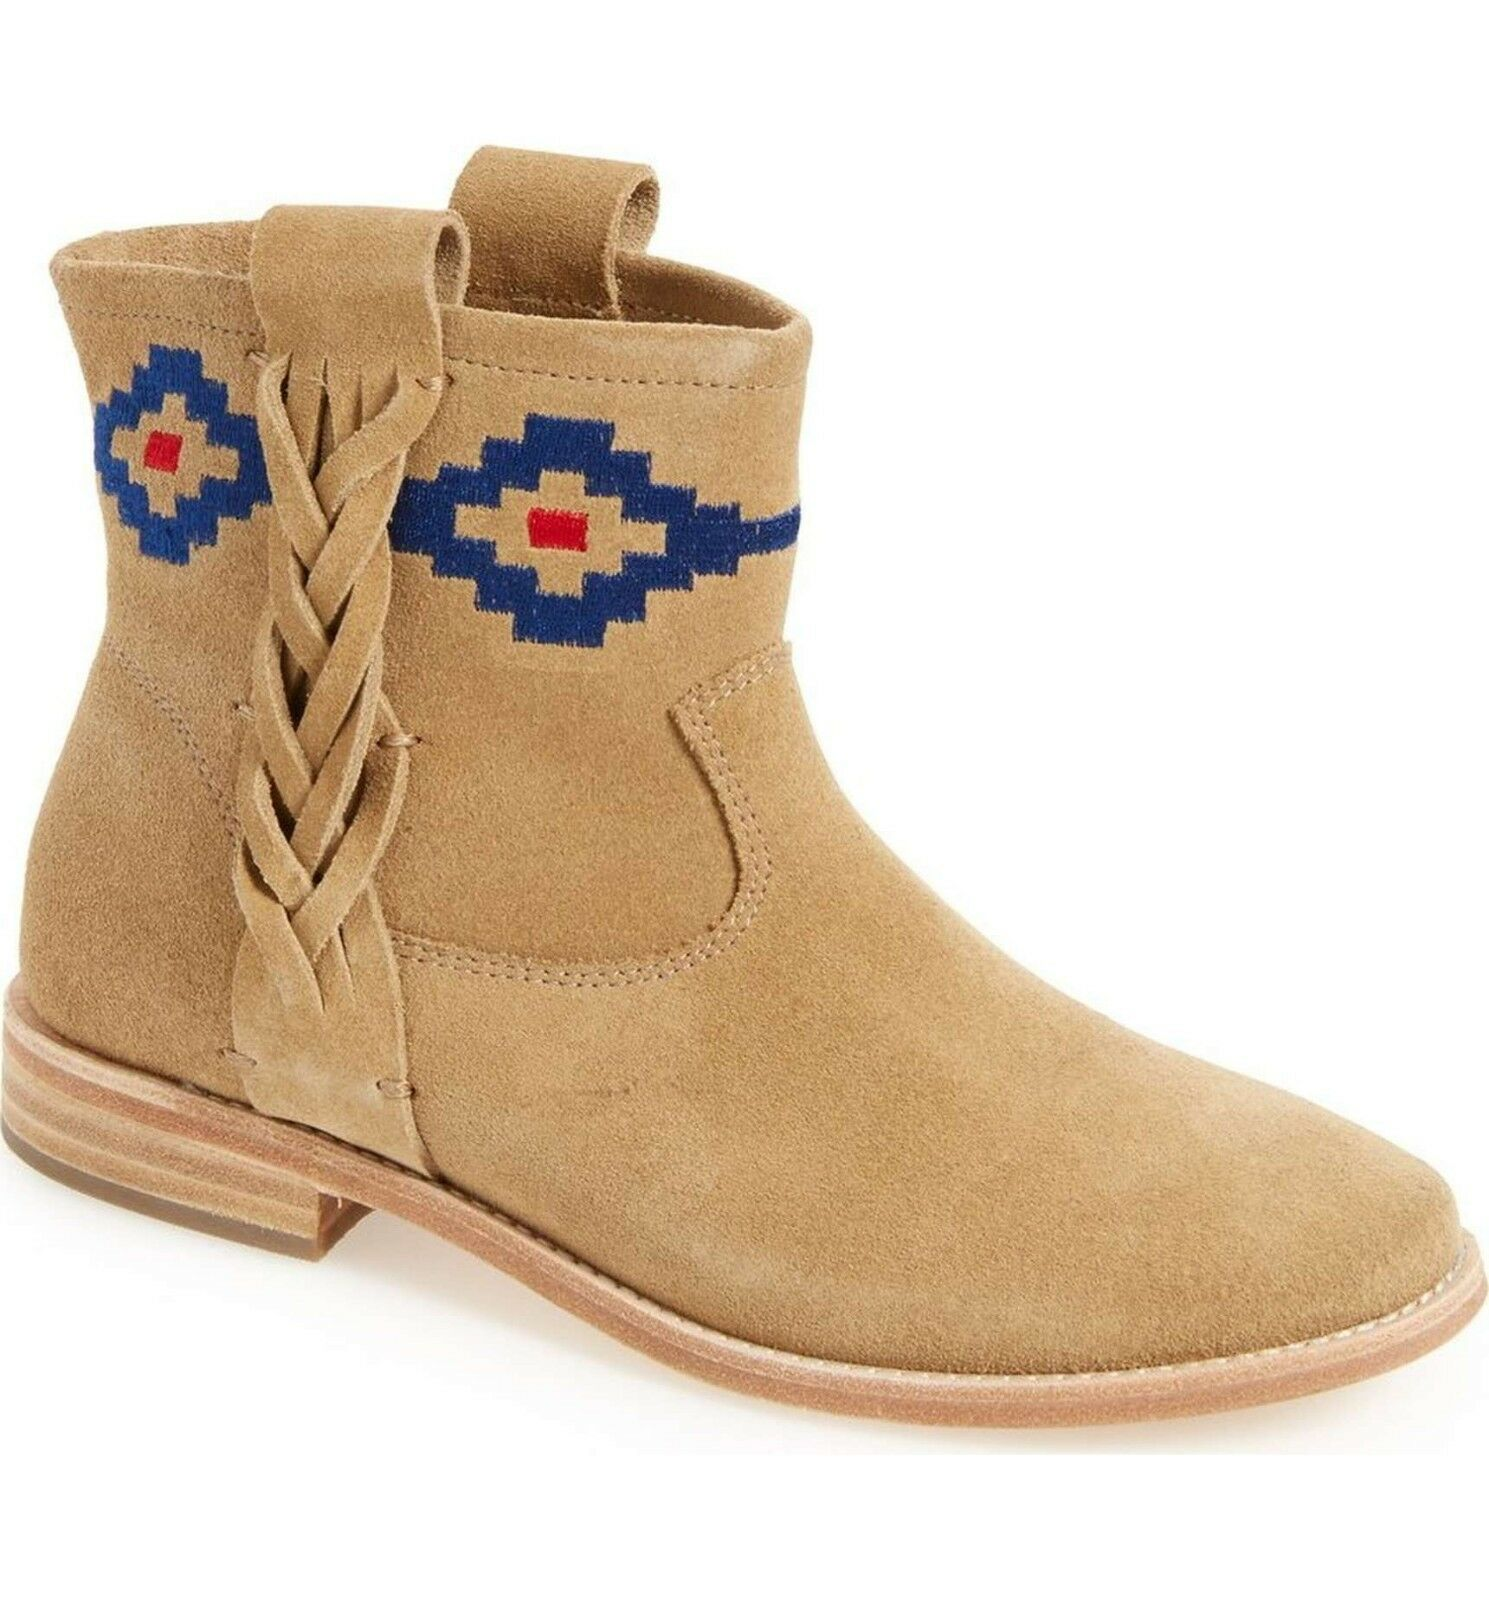 SOLUDOS Stiefel Embroiderot Geometric Geometric Geometric Braided Southwest Suede Ankle Stiefelies Tan 10 351052